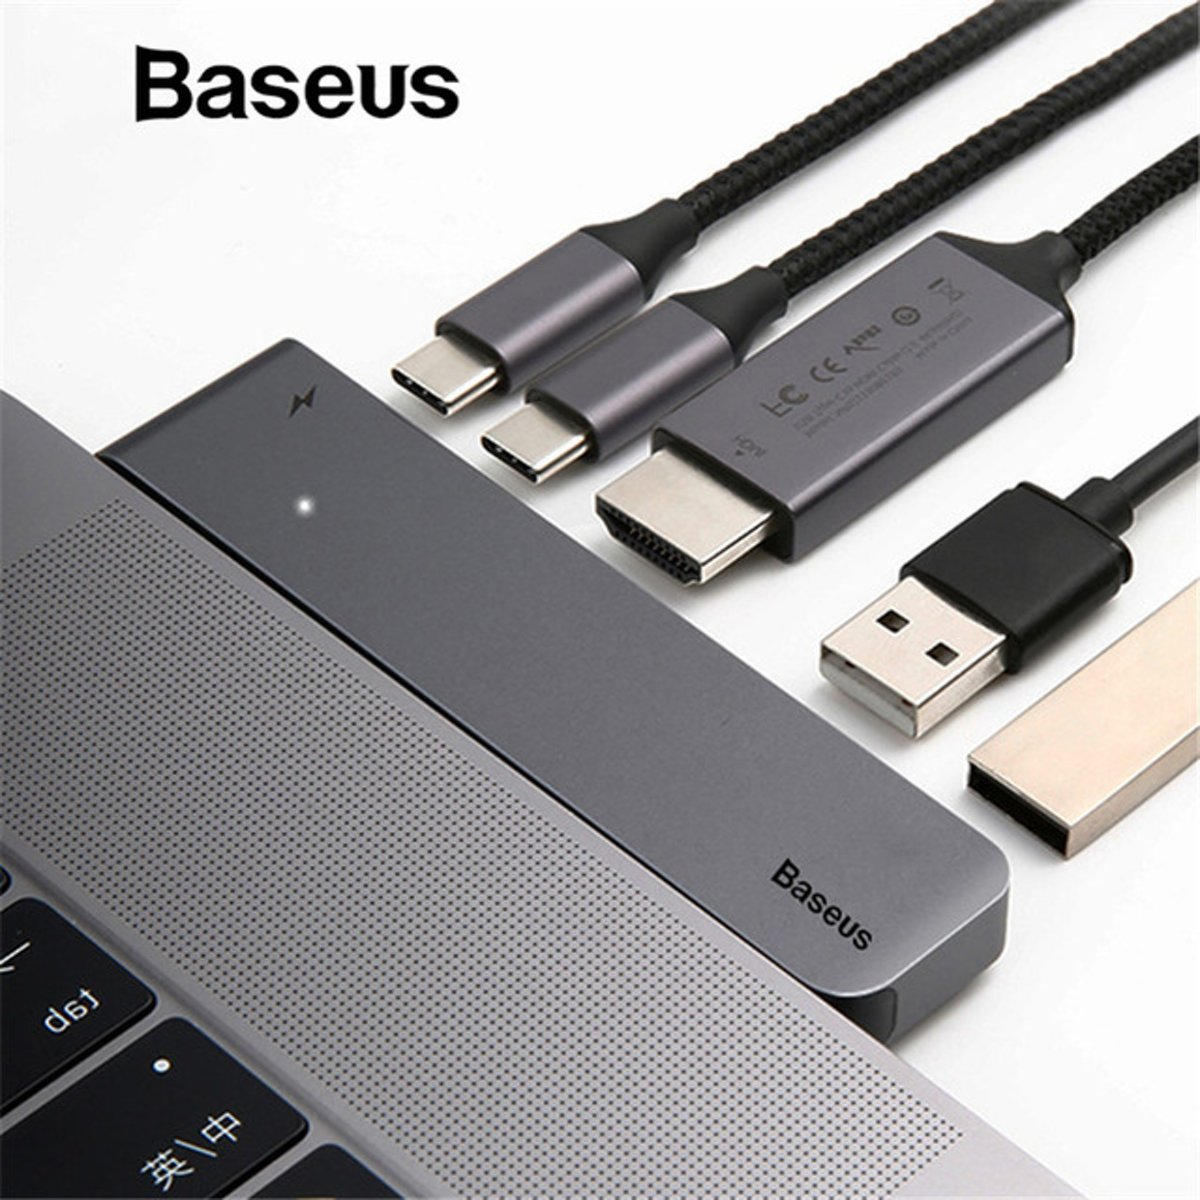 BASEUS Thunderbolt C+ Dual Type-C to USB3.0/HDMI/Type-C Female HUB Converter for MacBook Pro 2016/2017 - Space Grey